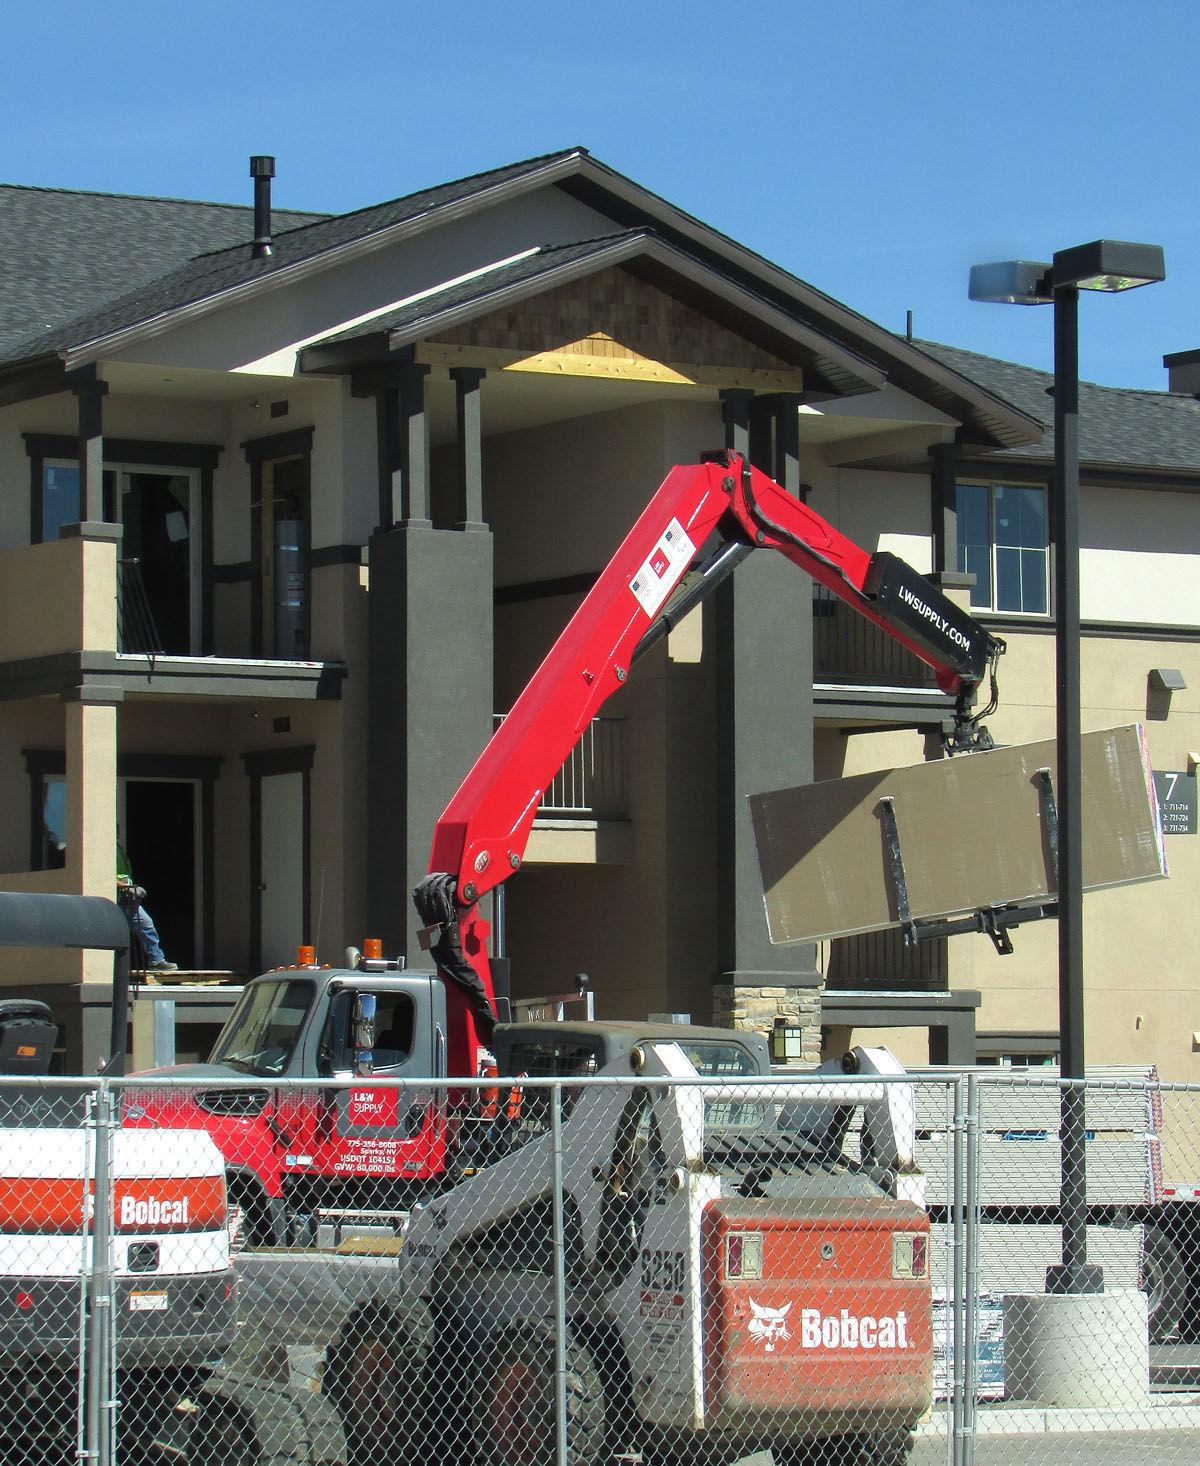 Local Apartments For Rent: Apartment Boom Changes Rental Climate In Elko